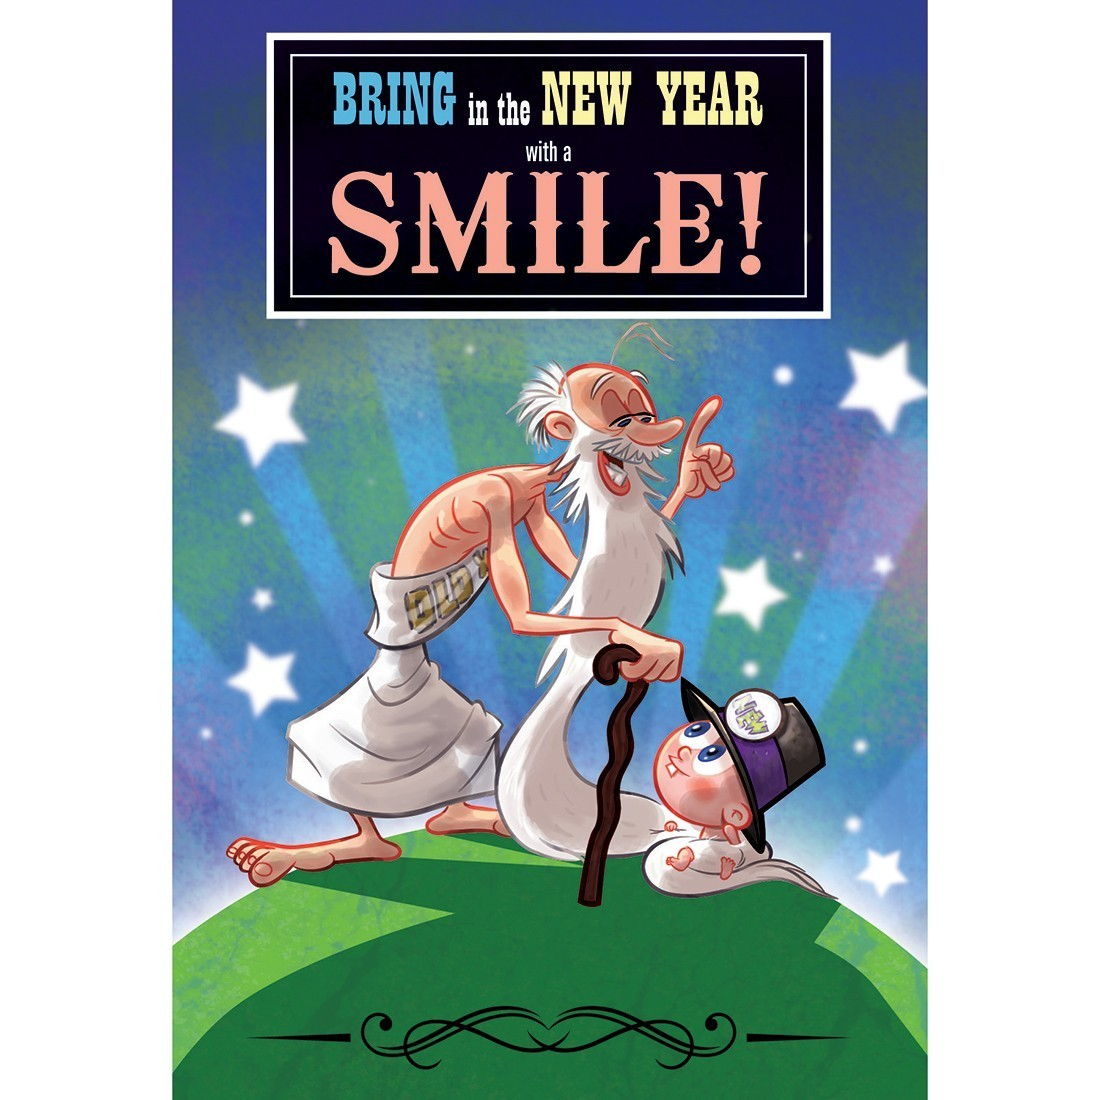 Bring New Year Smile Greeting Cards [image]